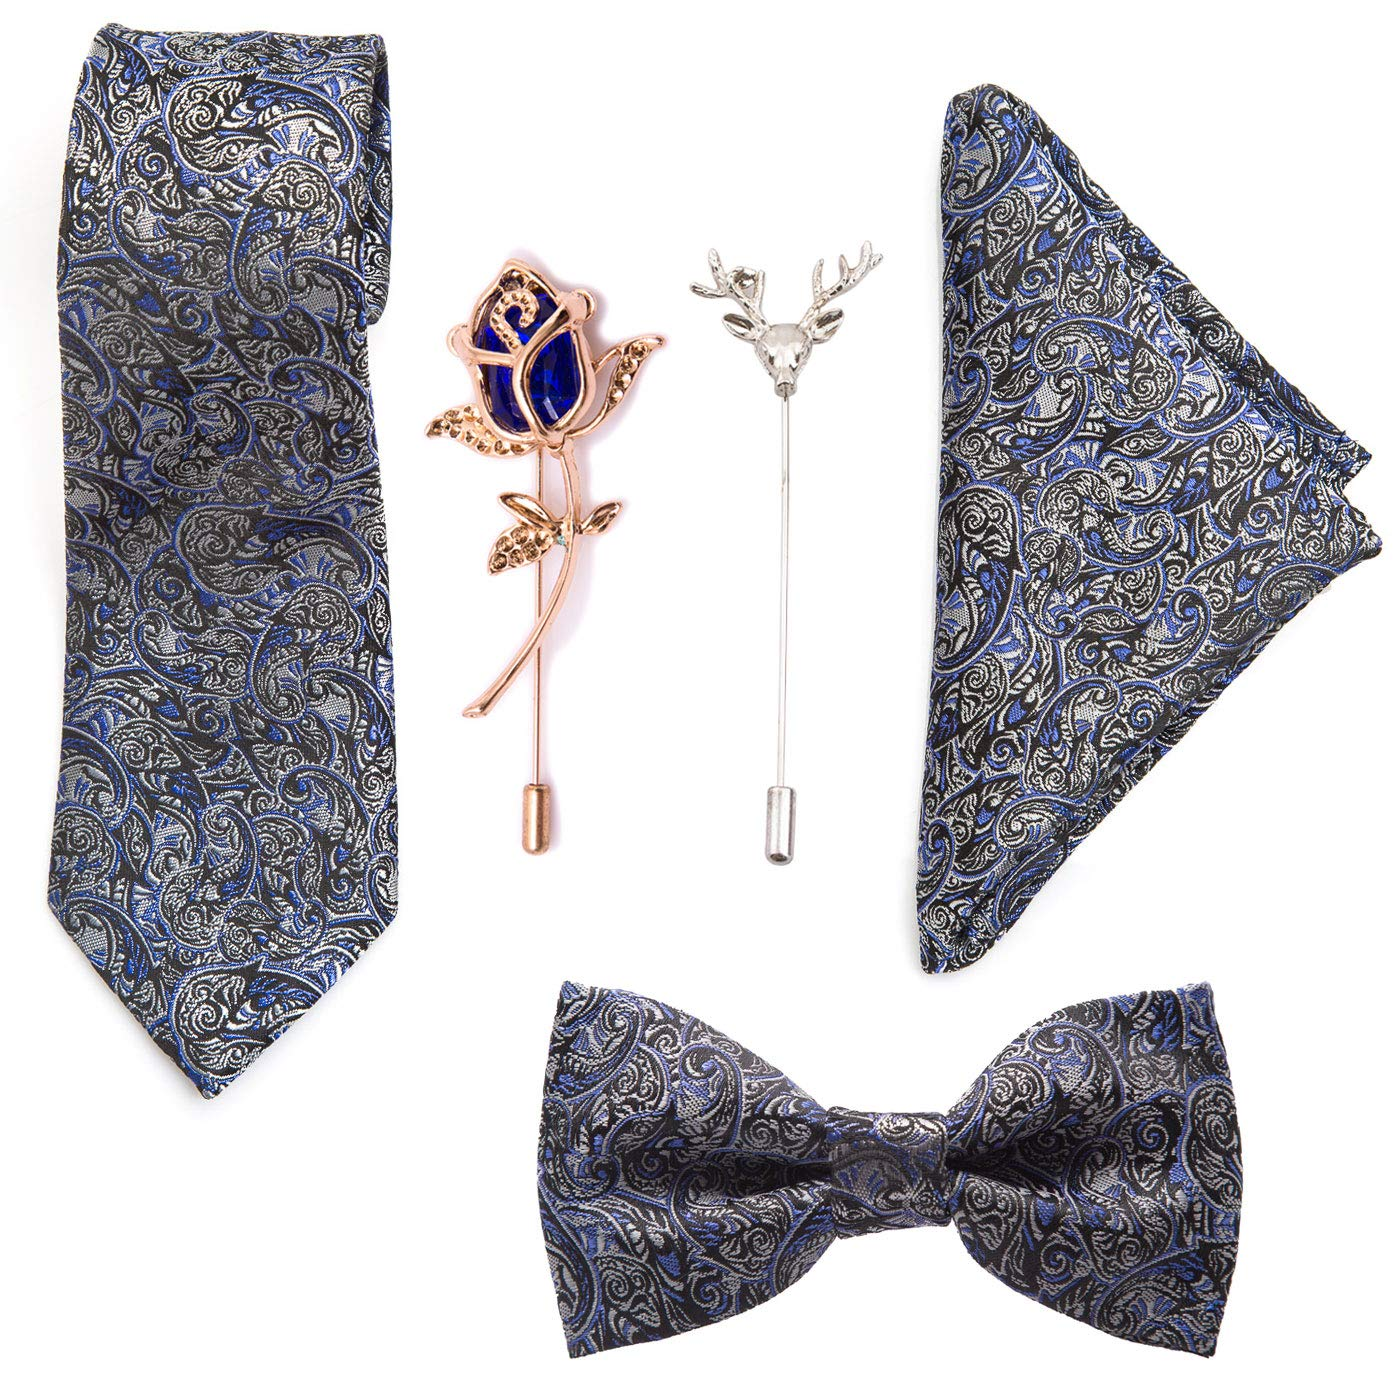 915737e8fe27 To The Nines Men's Silk Cotton Pocket Square, Bow Tie and Lapel Pins  (Blue): Amazon.in: Clothing & Accessories